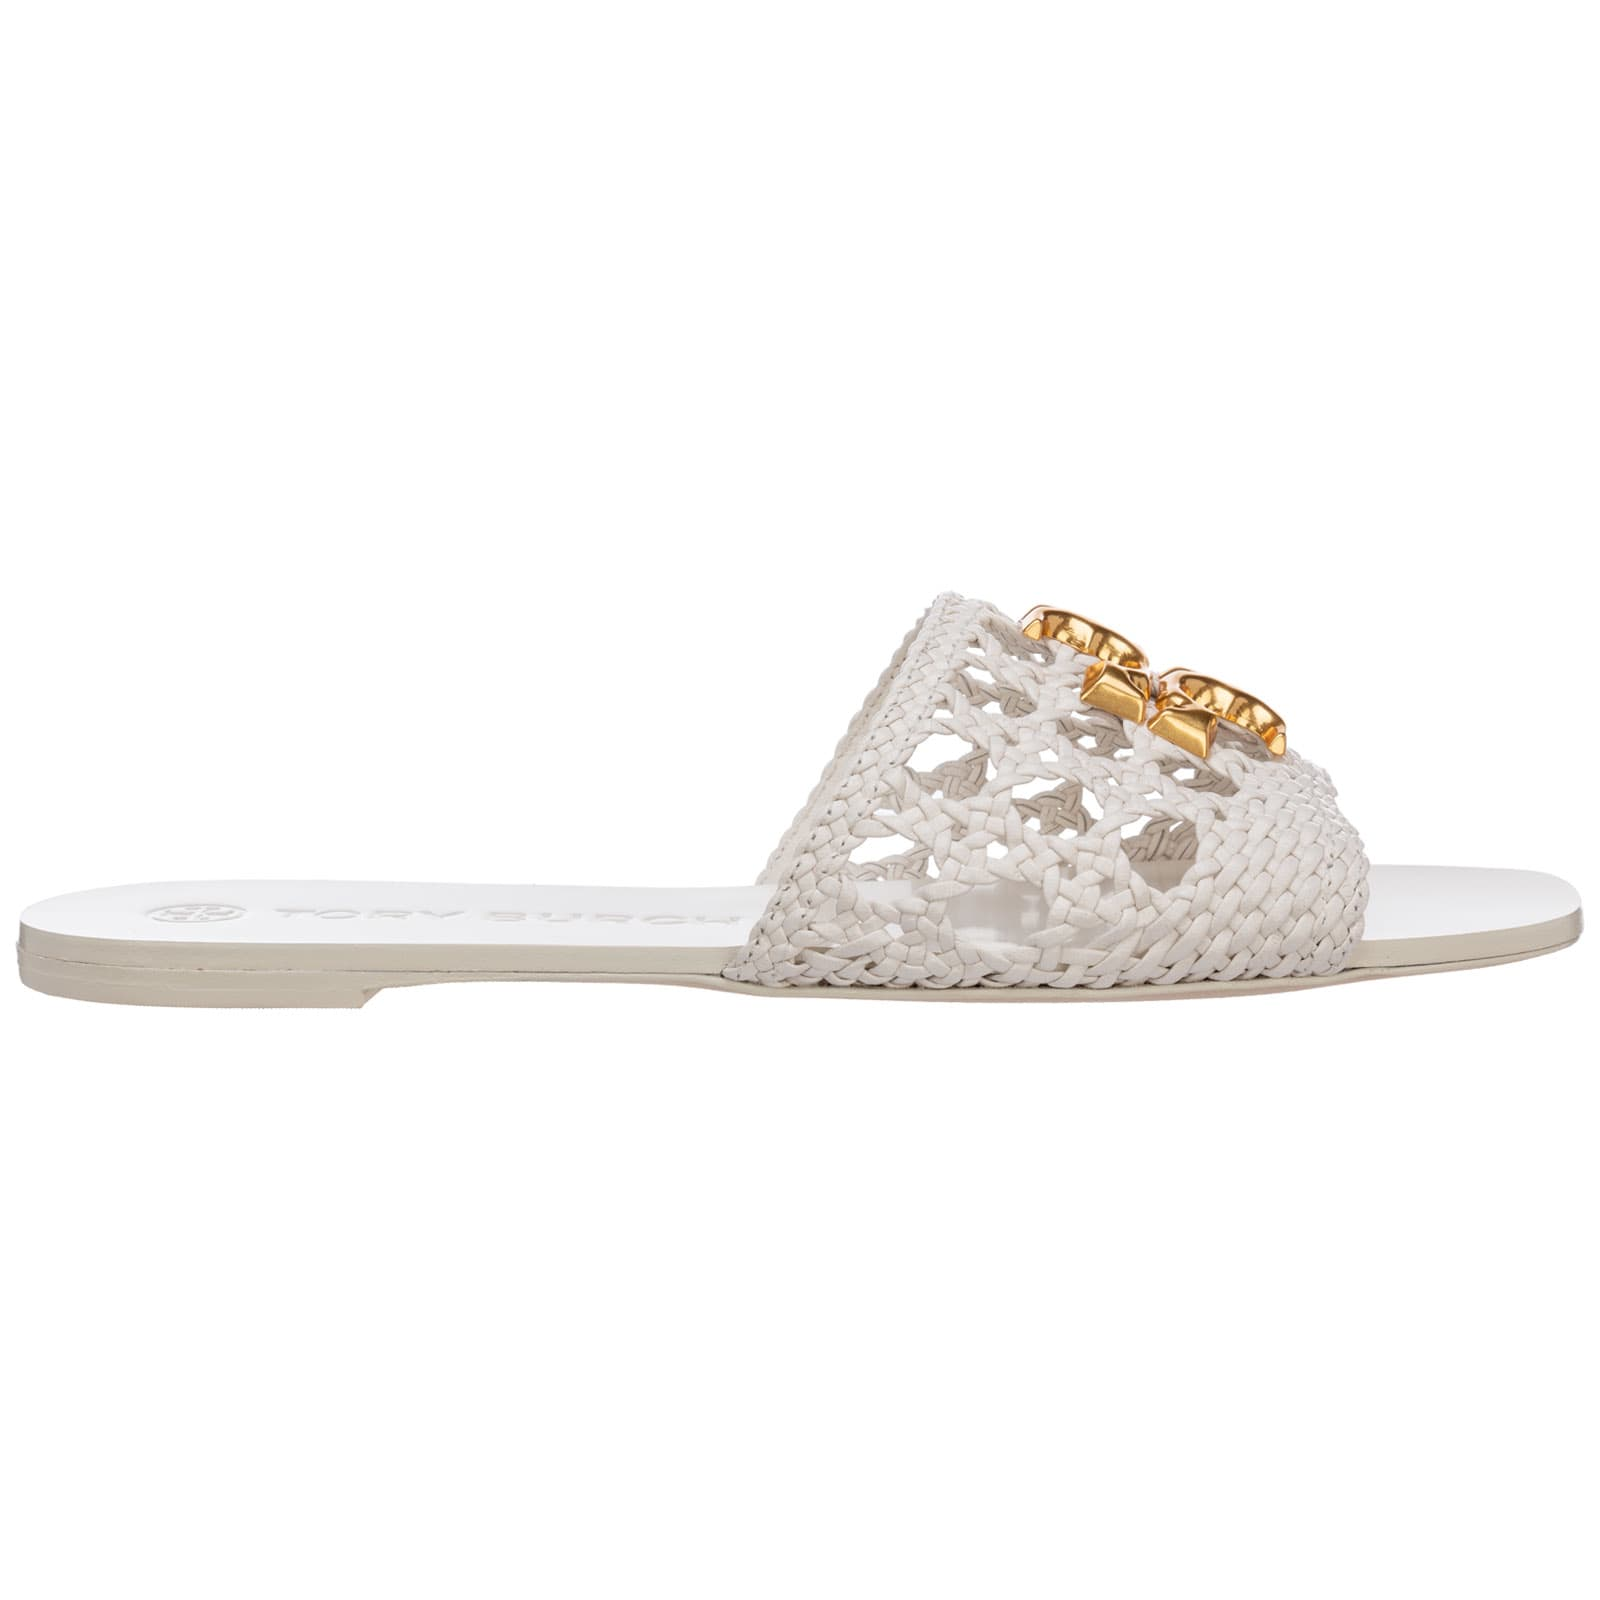 Buy Tory Burch Eleanor Sandals online, shop Tory Burch shoes with free shipping